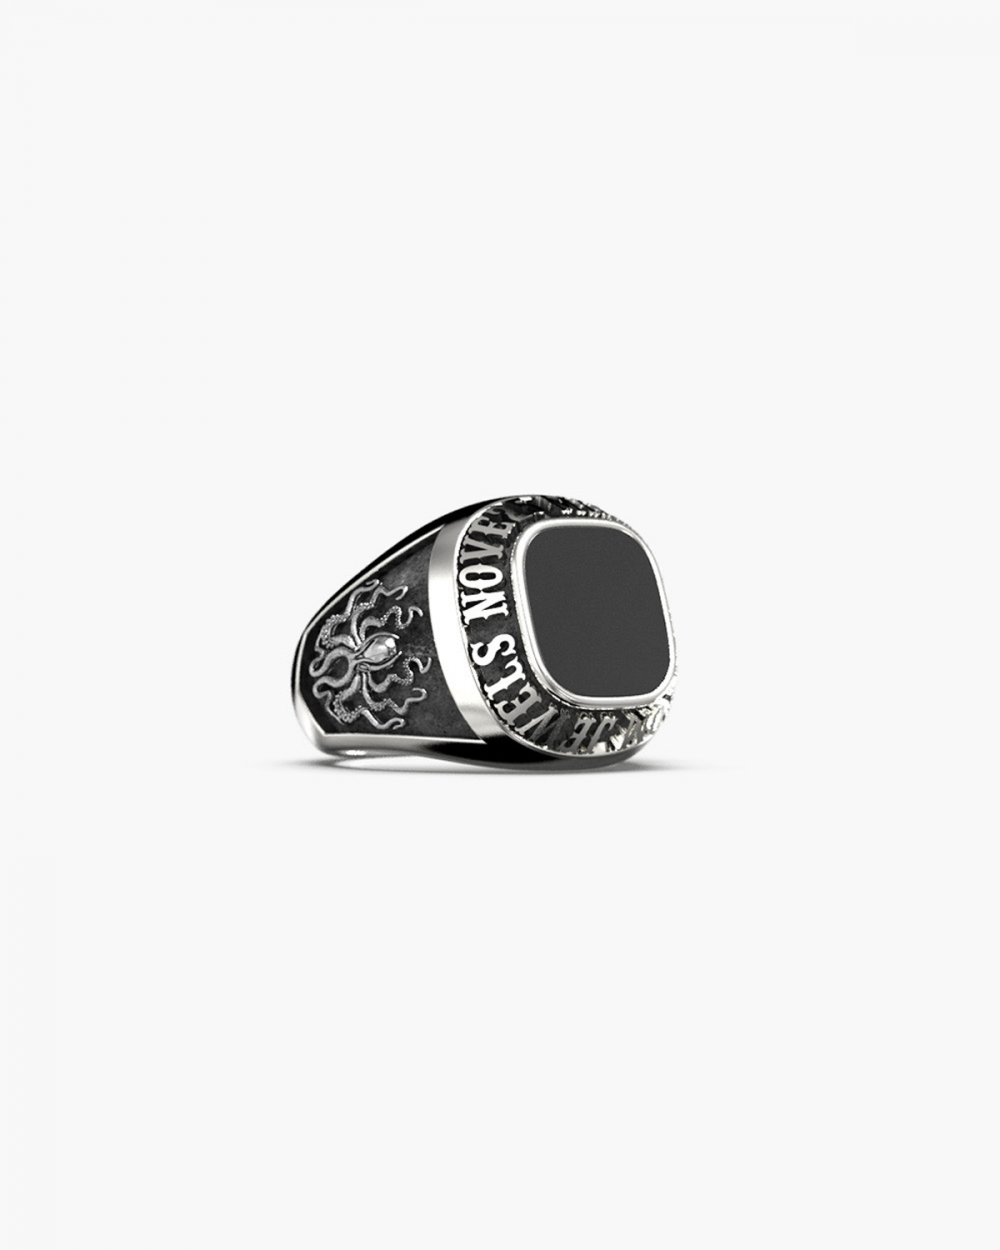 MYNOVE25 SQUARE CELEBRATION RING NOVE25